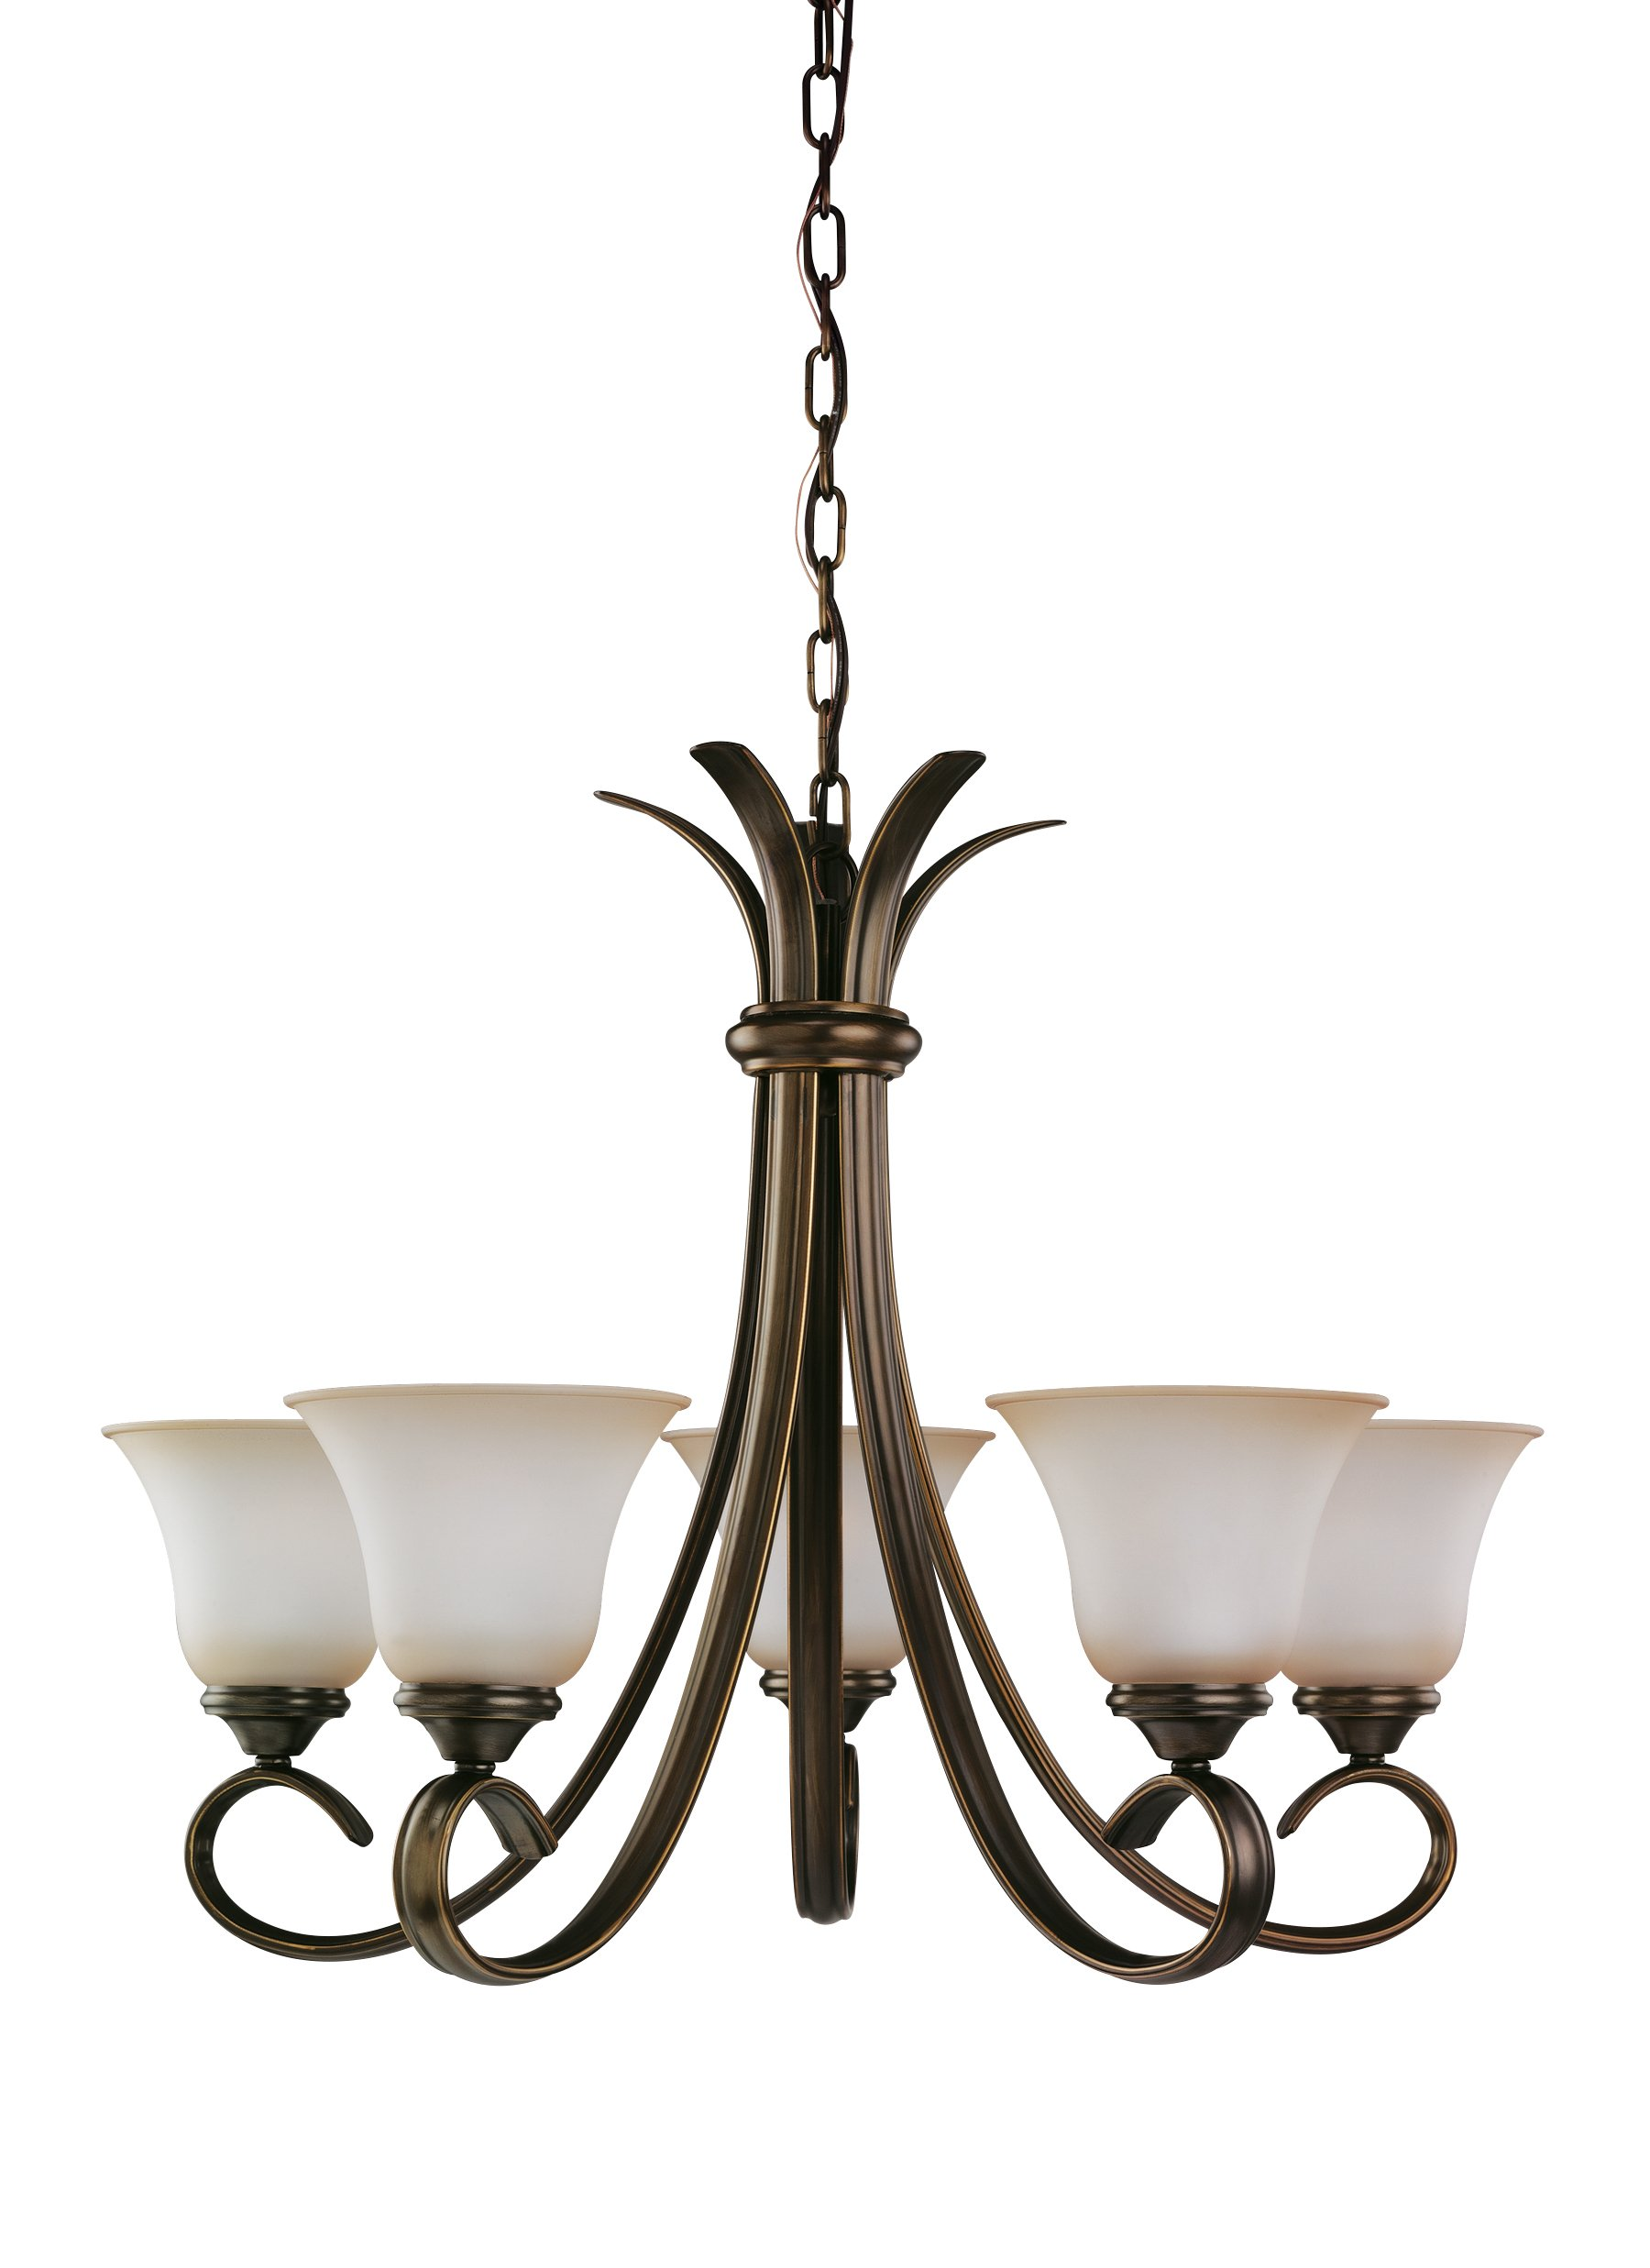 Sea Gull Lighting 31361-829 Five-Light Rialto Chandelier with Ginger Glass Shades, Russet Bronze Finish